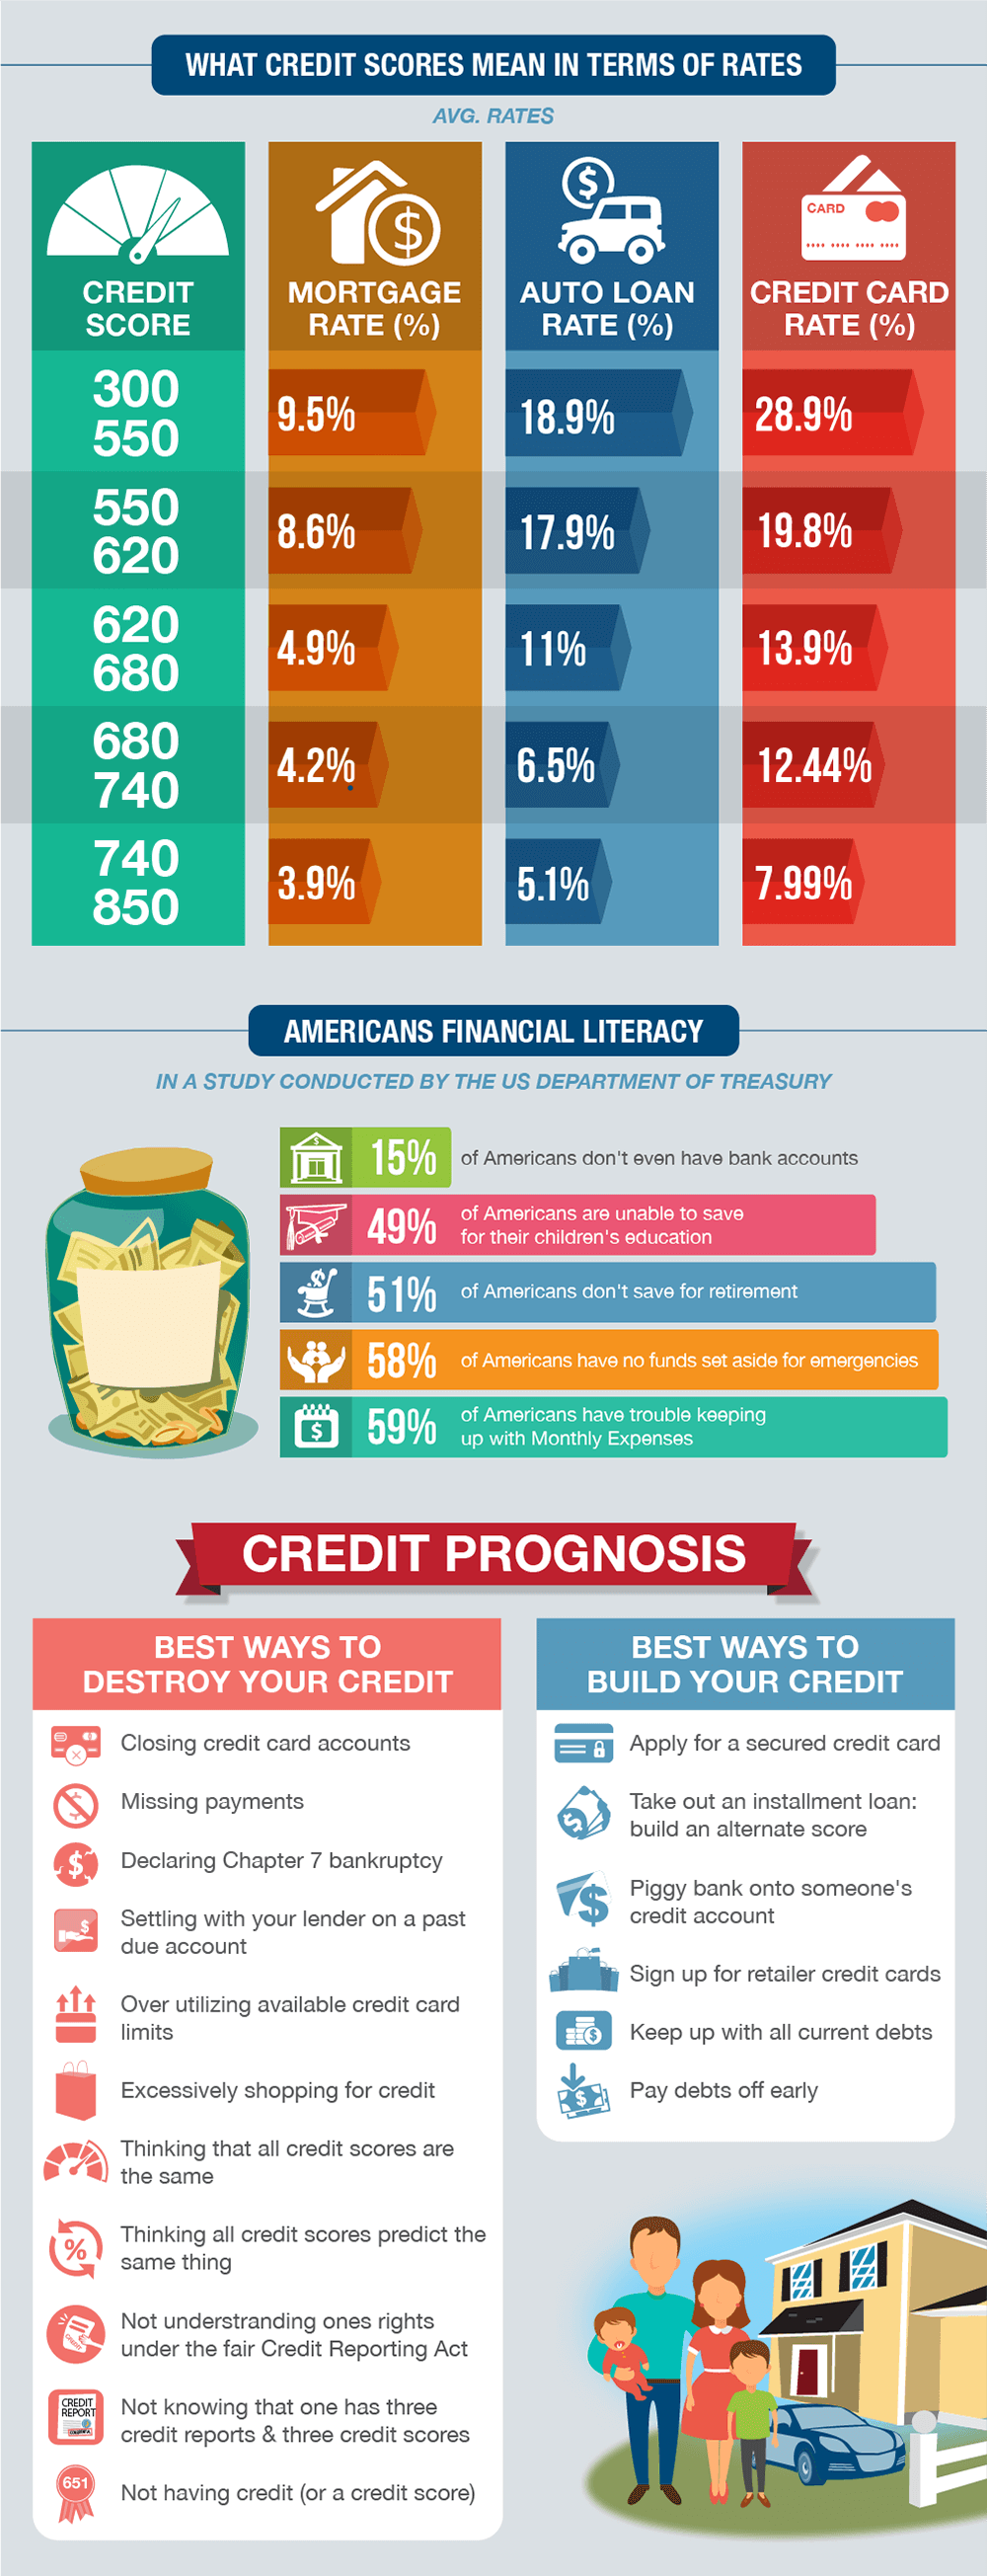 Anatomy of Good vs Bad Credit CreditLoan